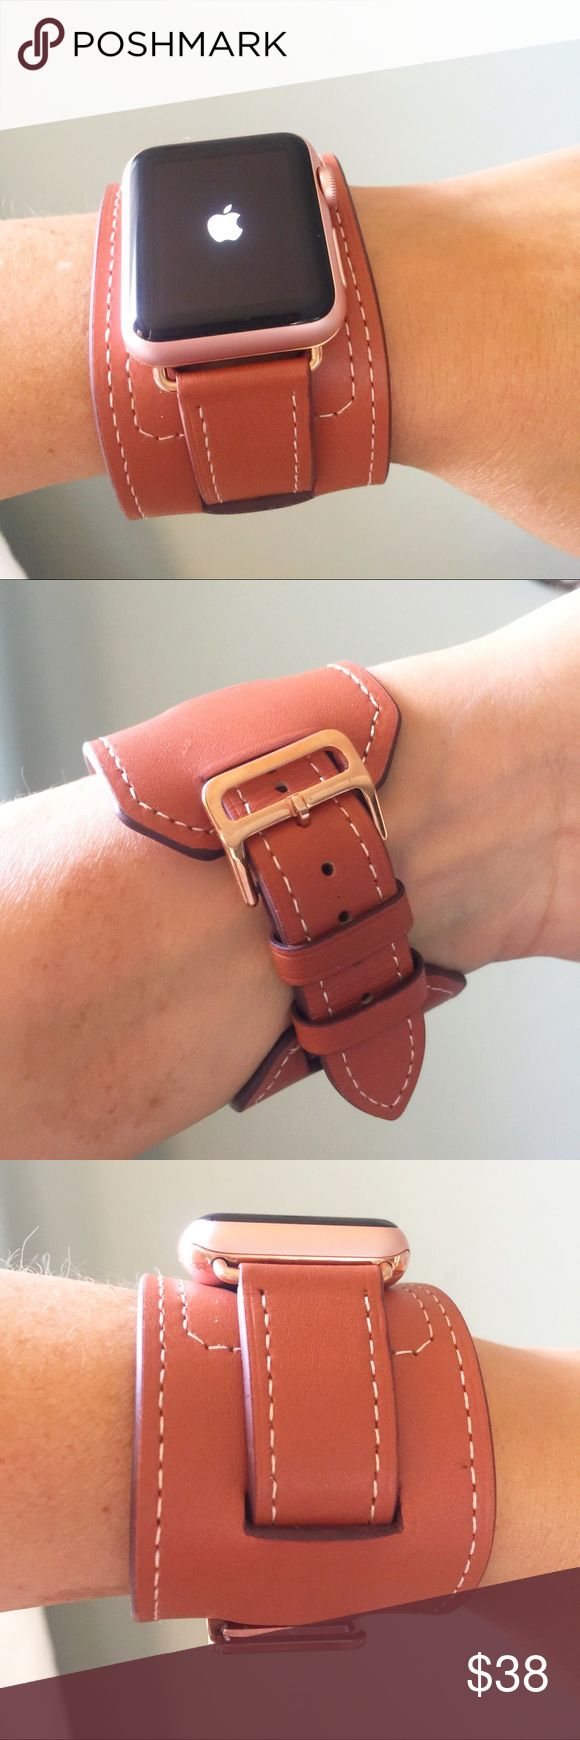 ROSE GOLD Brown Apple Watch Band cuff! 38mm, 42mm Brown Apple Watch band with rose gold hardware.  Cuff, genuine leather.  It comes in 38mm and 42mm. Please select your size when you purchase. The adapters also fit the Apple Watch Sport.   I also have other band colors, hardware colors and styles in my closet. Check them out!   I offer 15% off if you buy two or more! only the band is for sale; it does not include the watch. Other